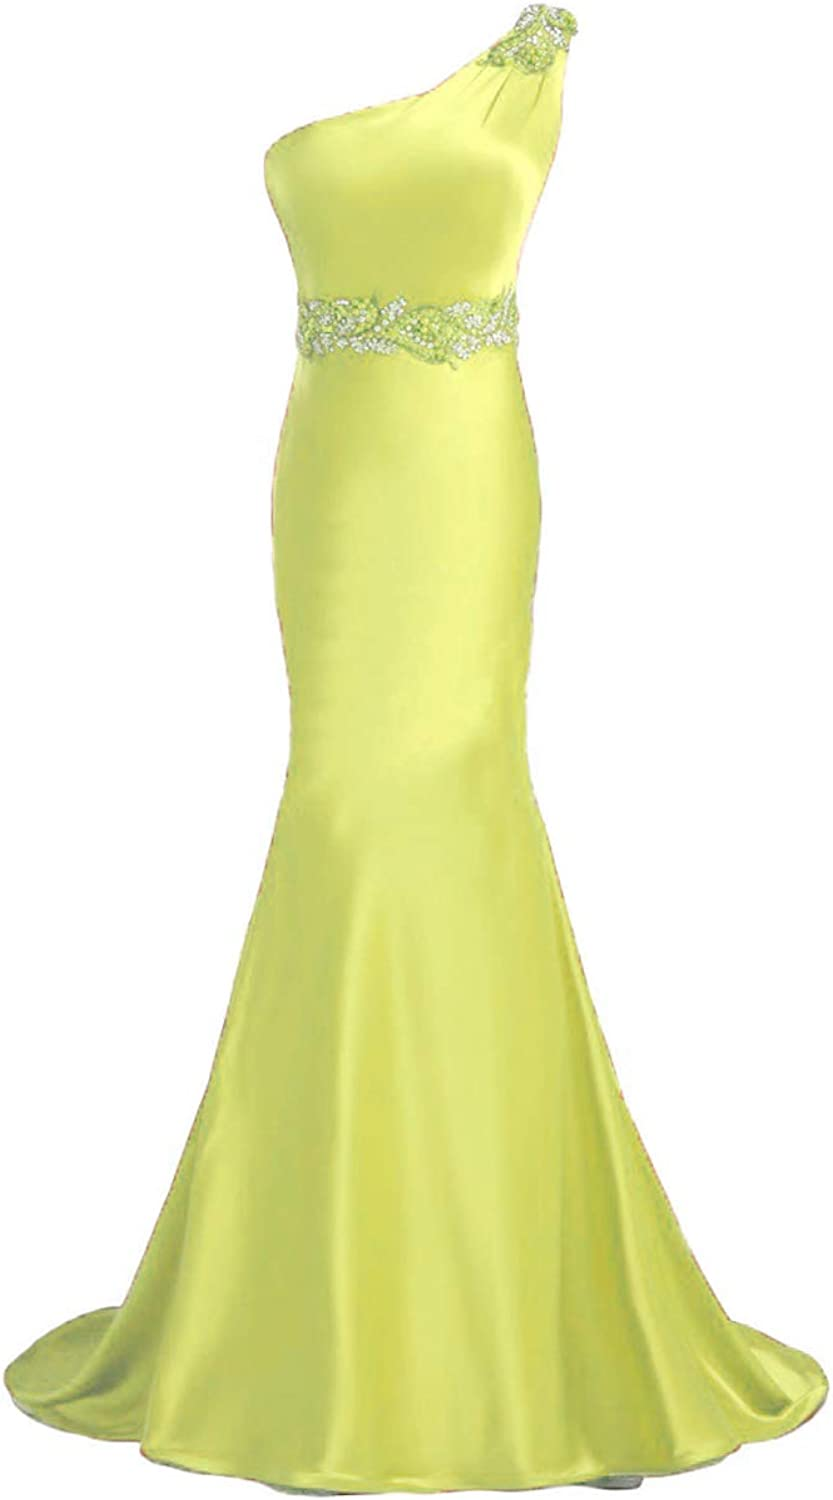 Beilite Women's One Shoulder Mermaid Long Evening Gown Party Dresses